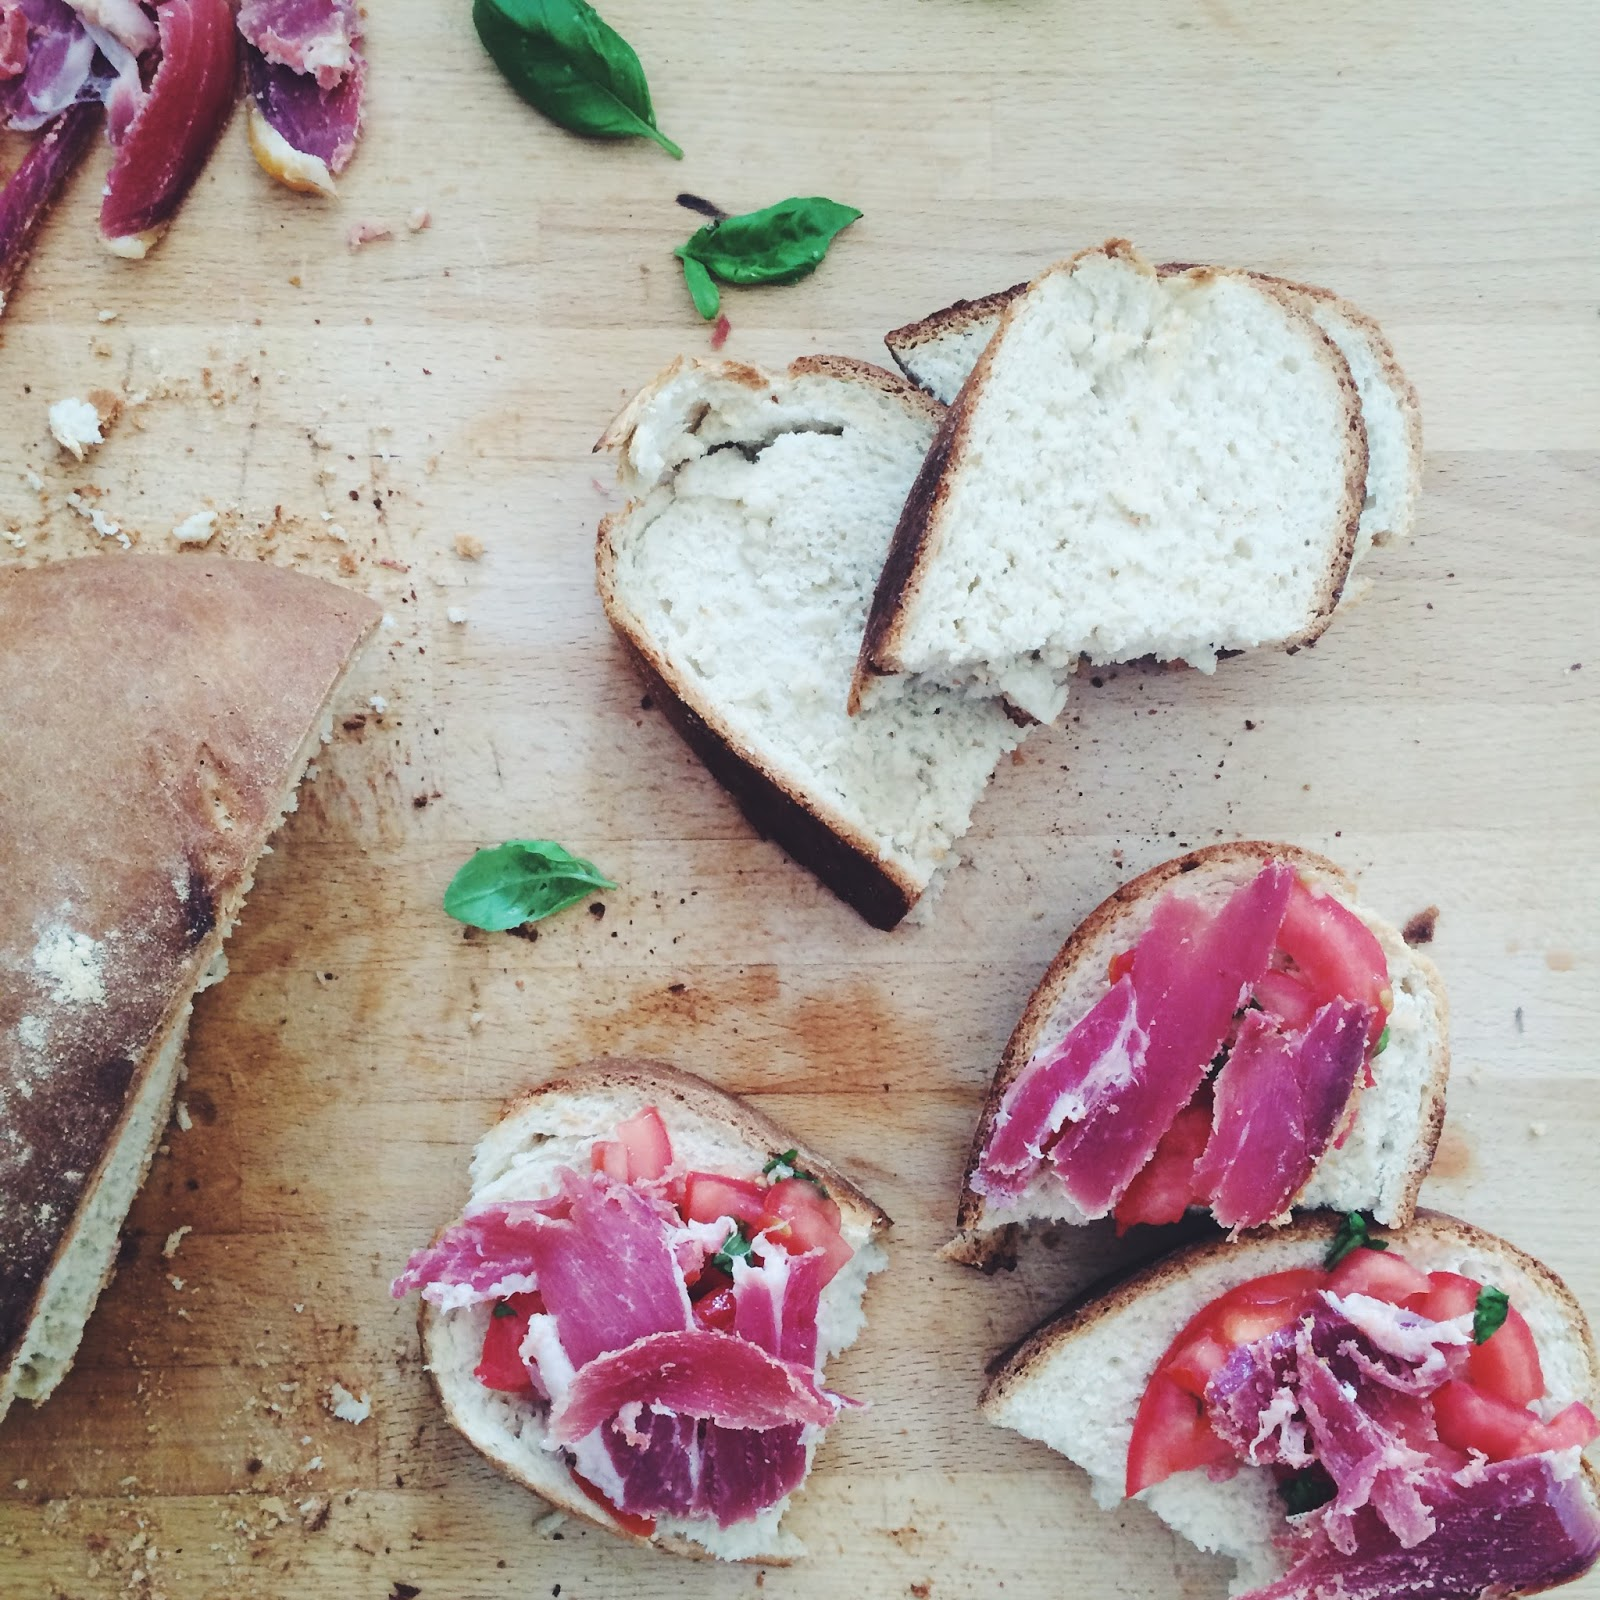 Dalry Rose blog, fresh bread and prosciutto, what makes a house a home